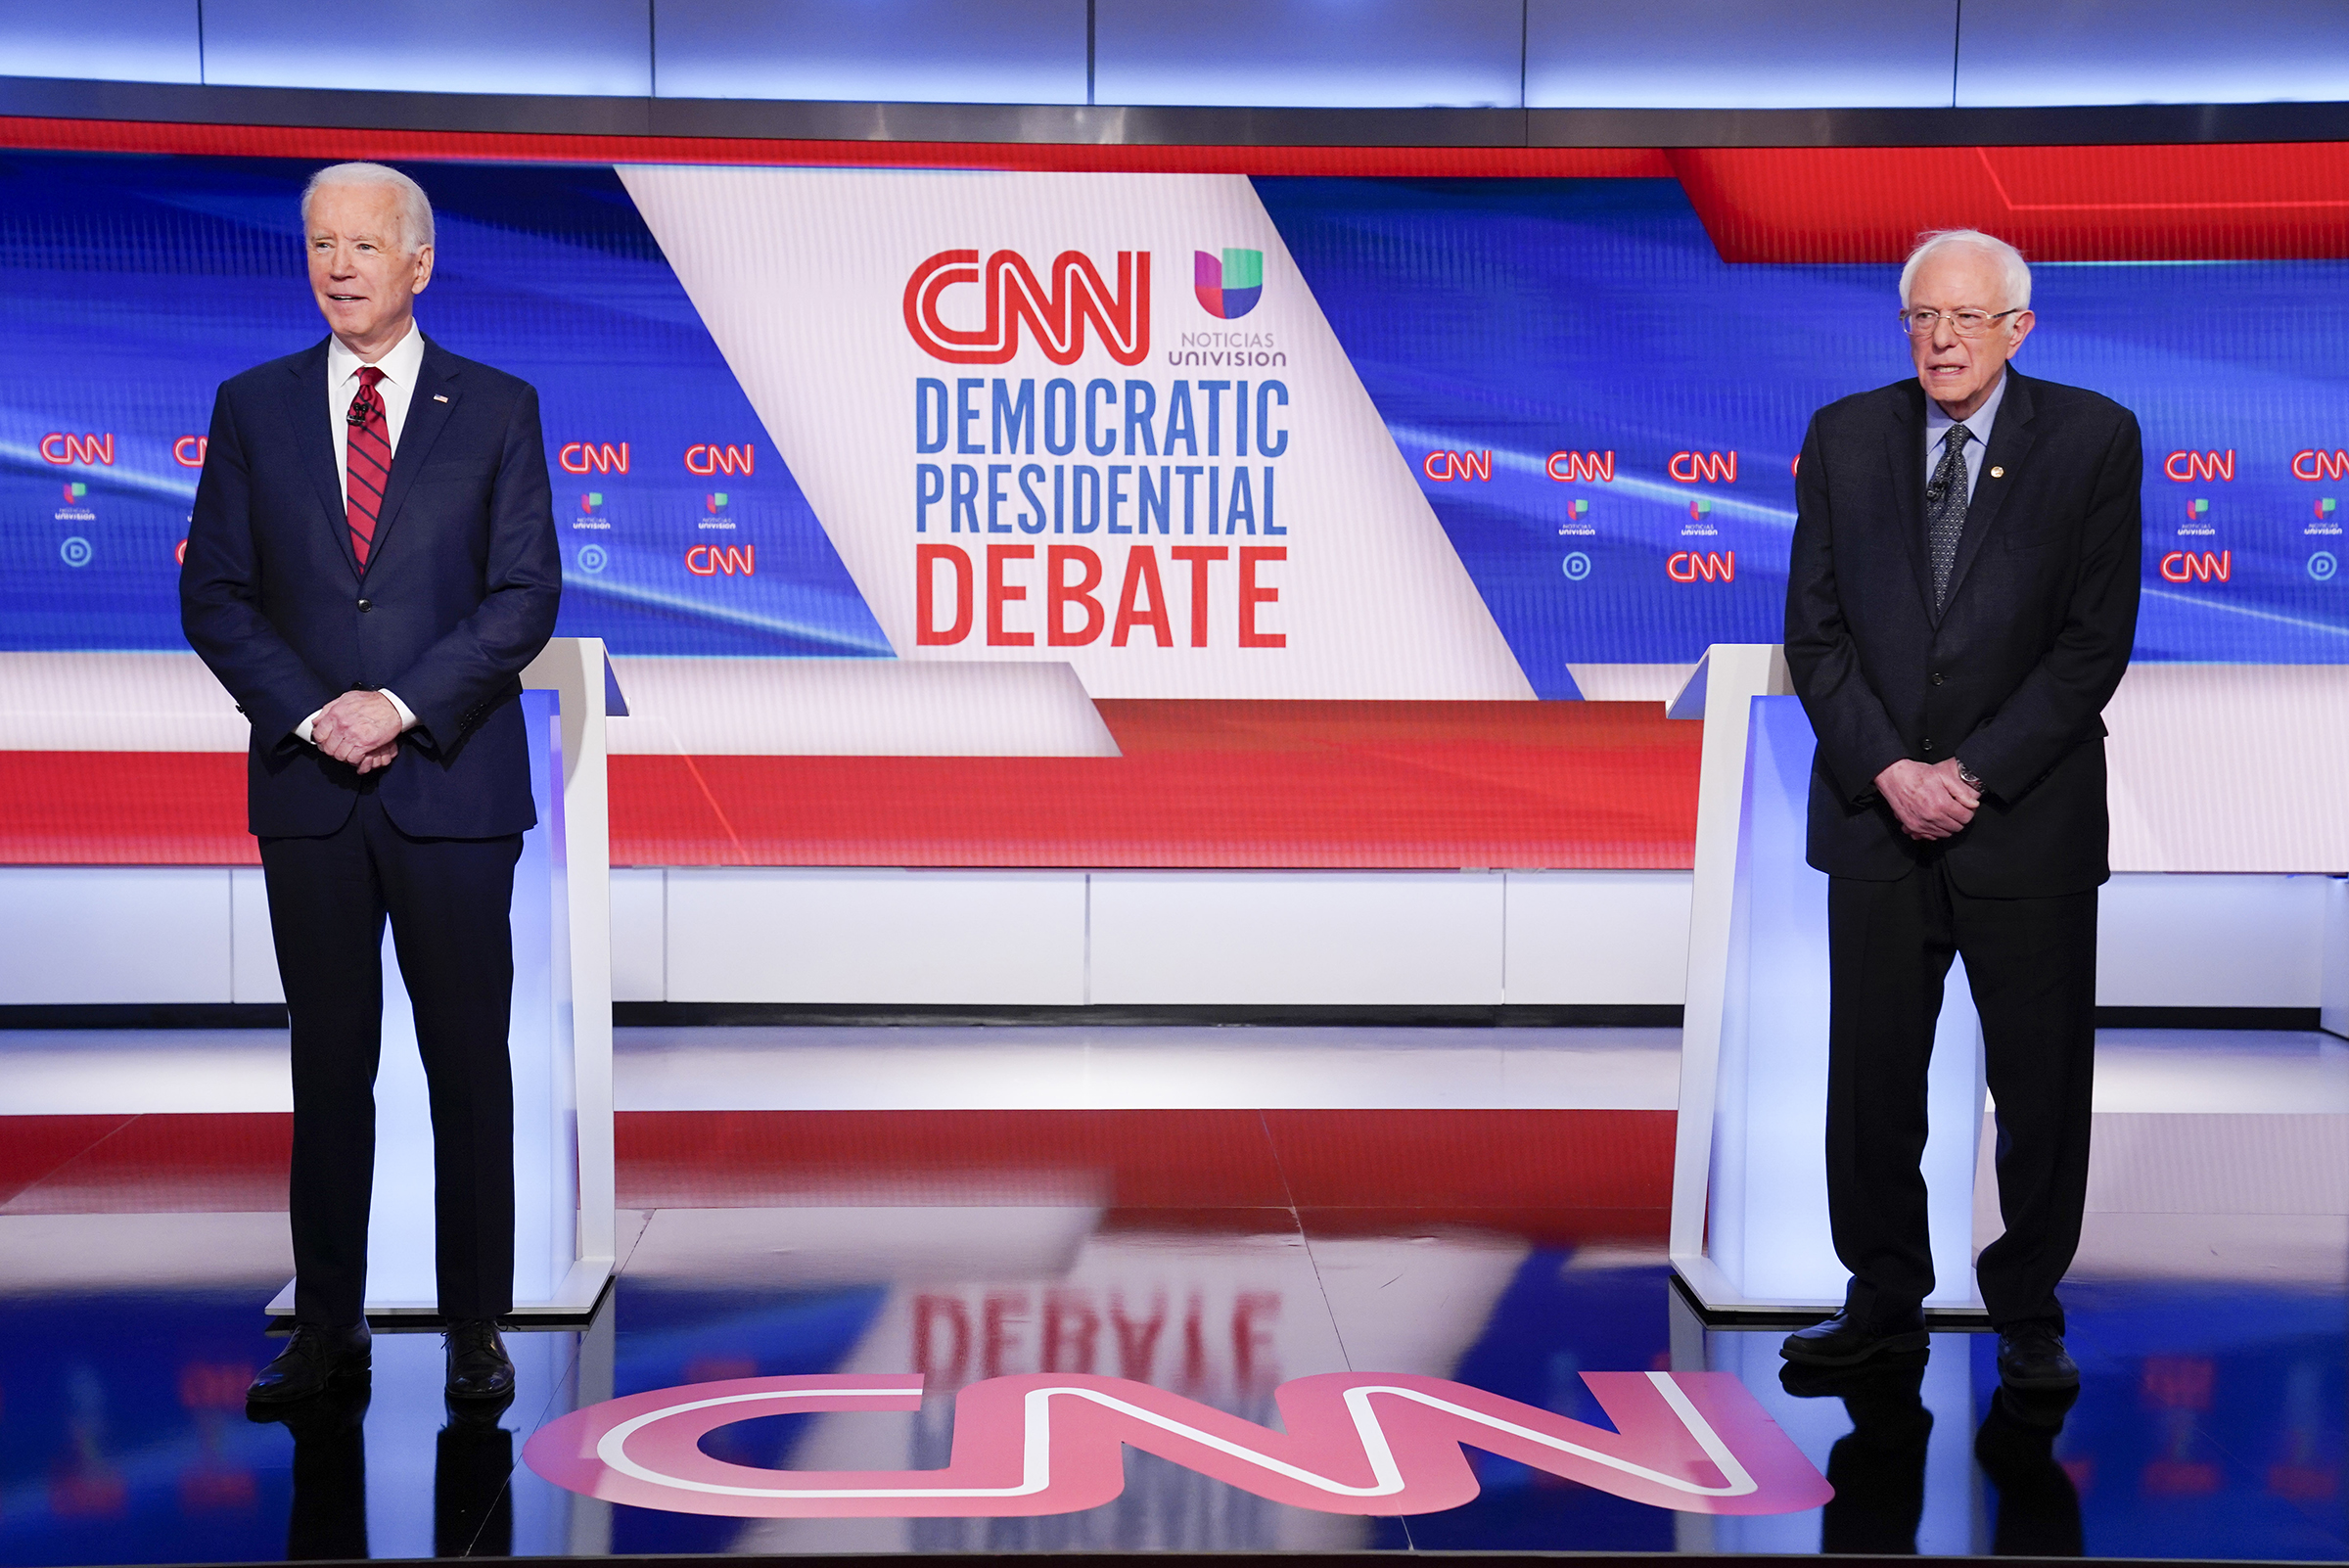 Former Vice President Joe Biden, left, and Sen. Bernie Sanders, I-Vt., right, wait on stage to participate in a Democratic presidential primary debate in Washington D.C. on March 15, 2020.